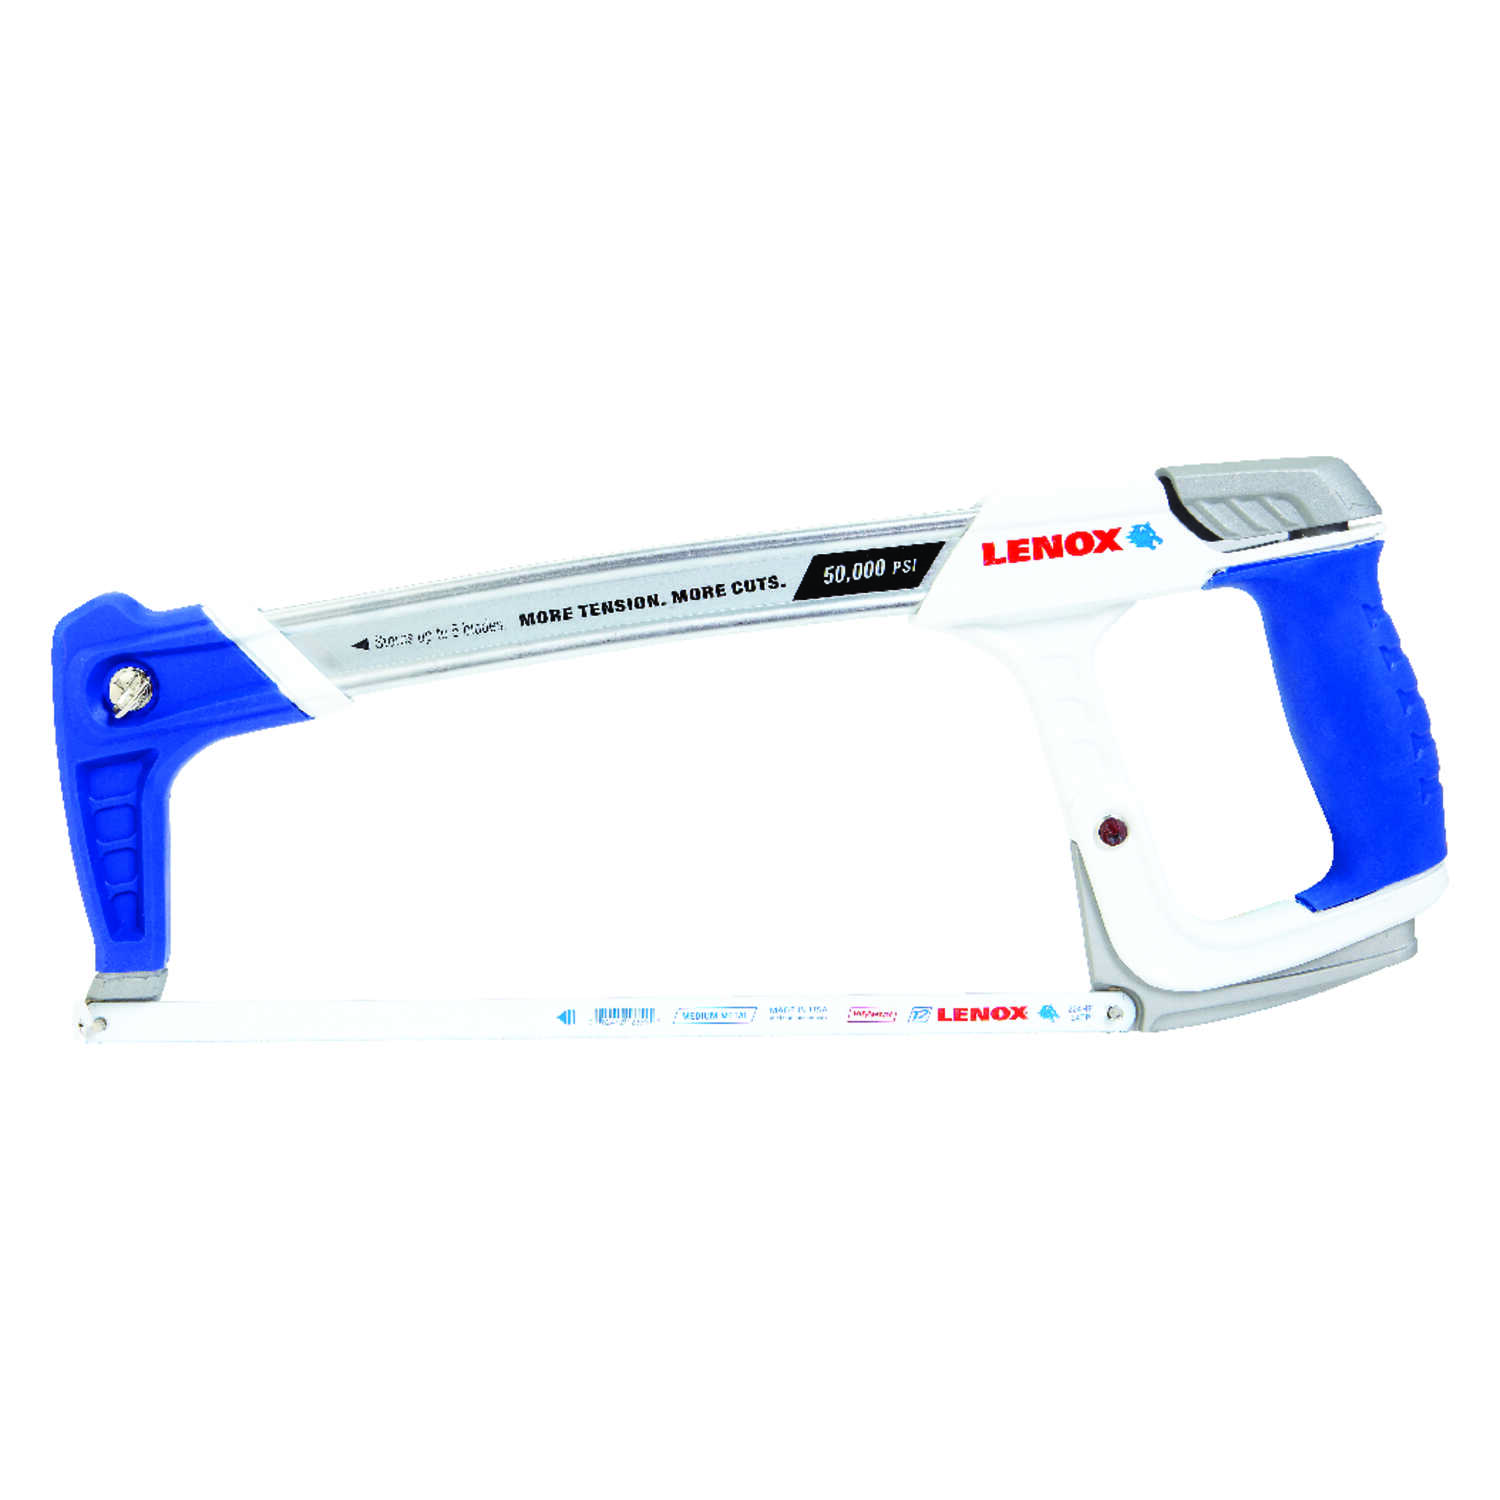 LENOX  12 in. Hacksaw  White  1 pc.